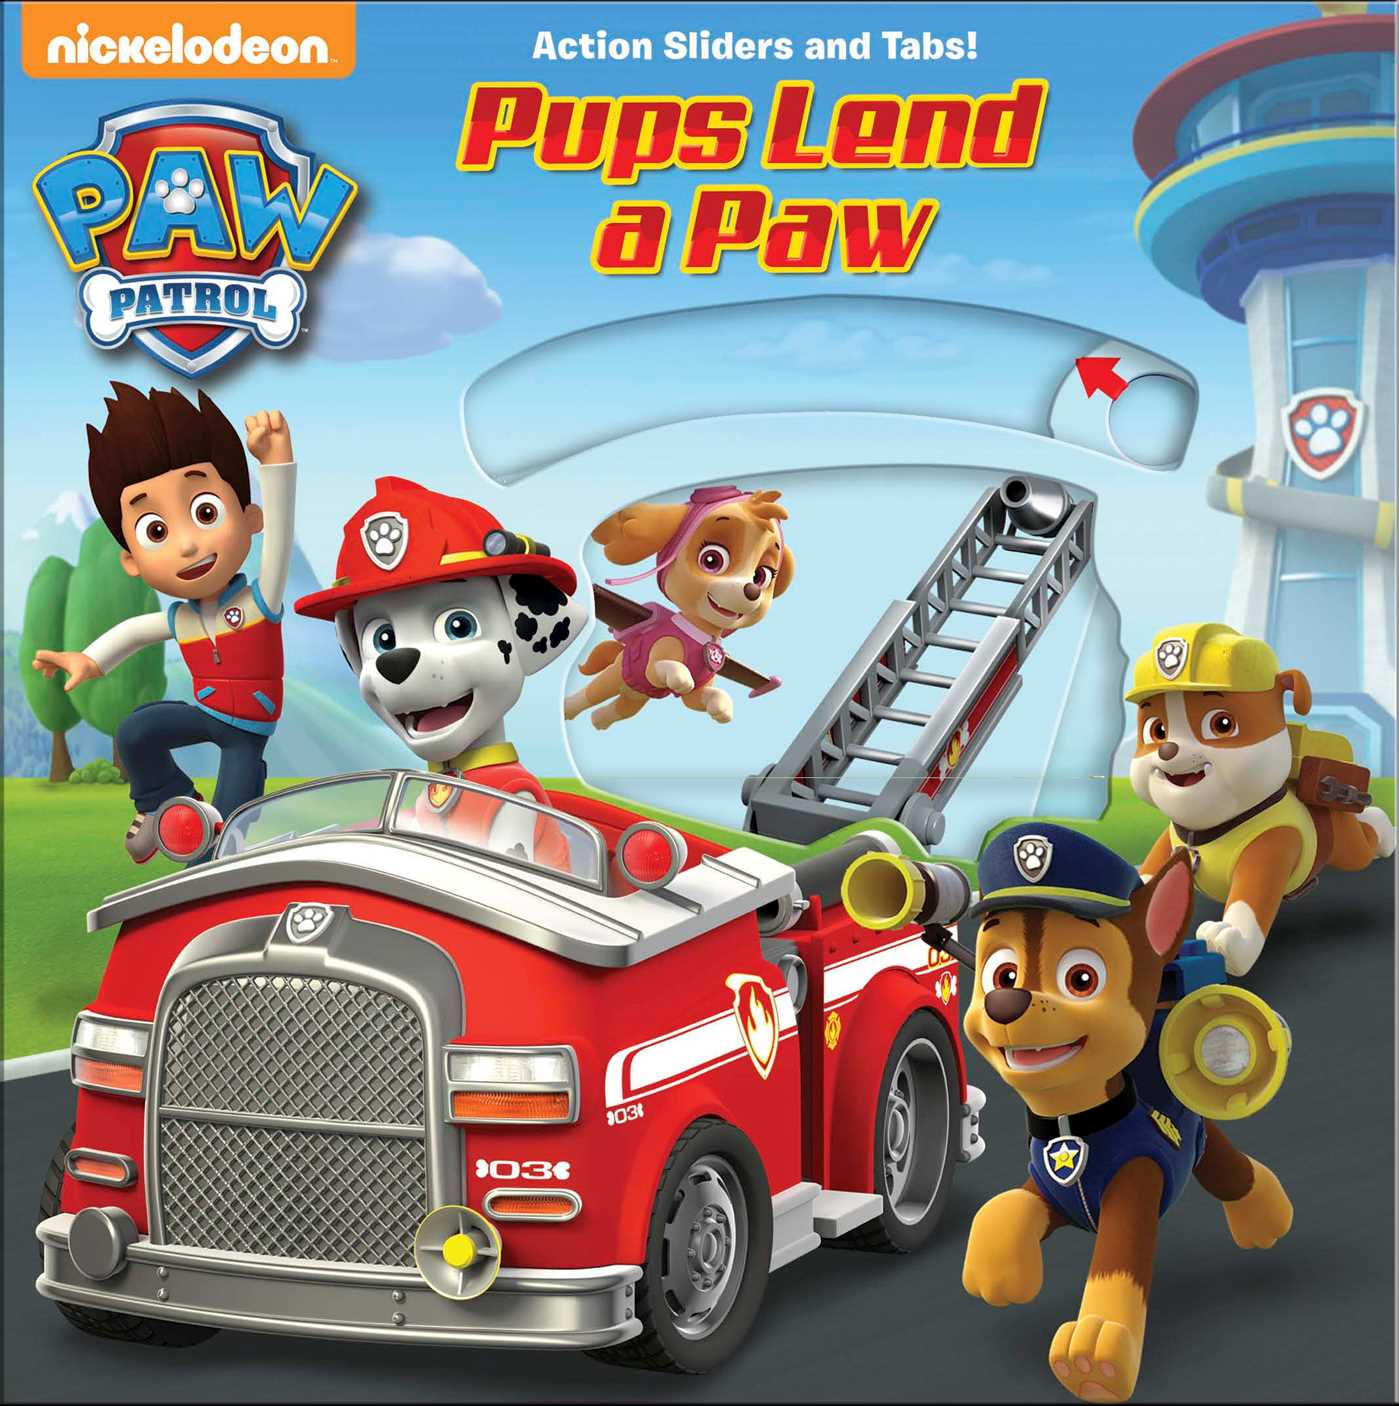 Paw Patrol Pups Lend A Paw Book By Tbd Official